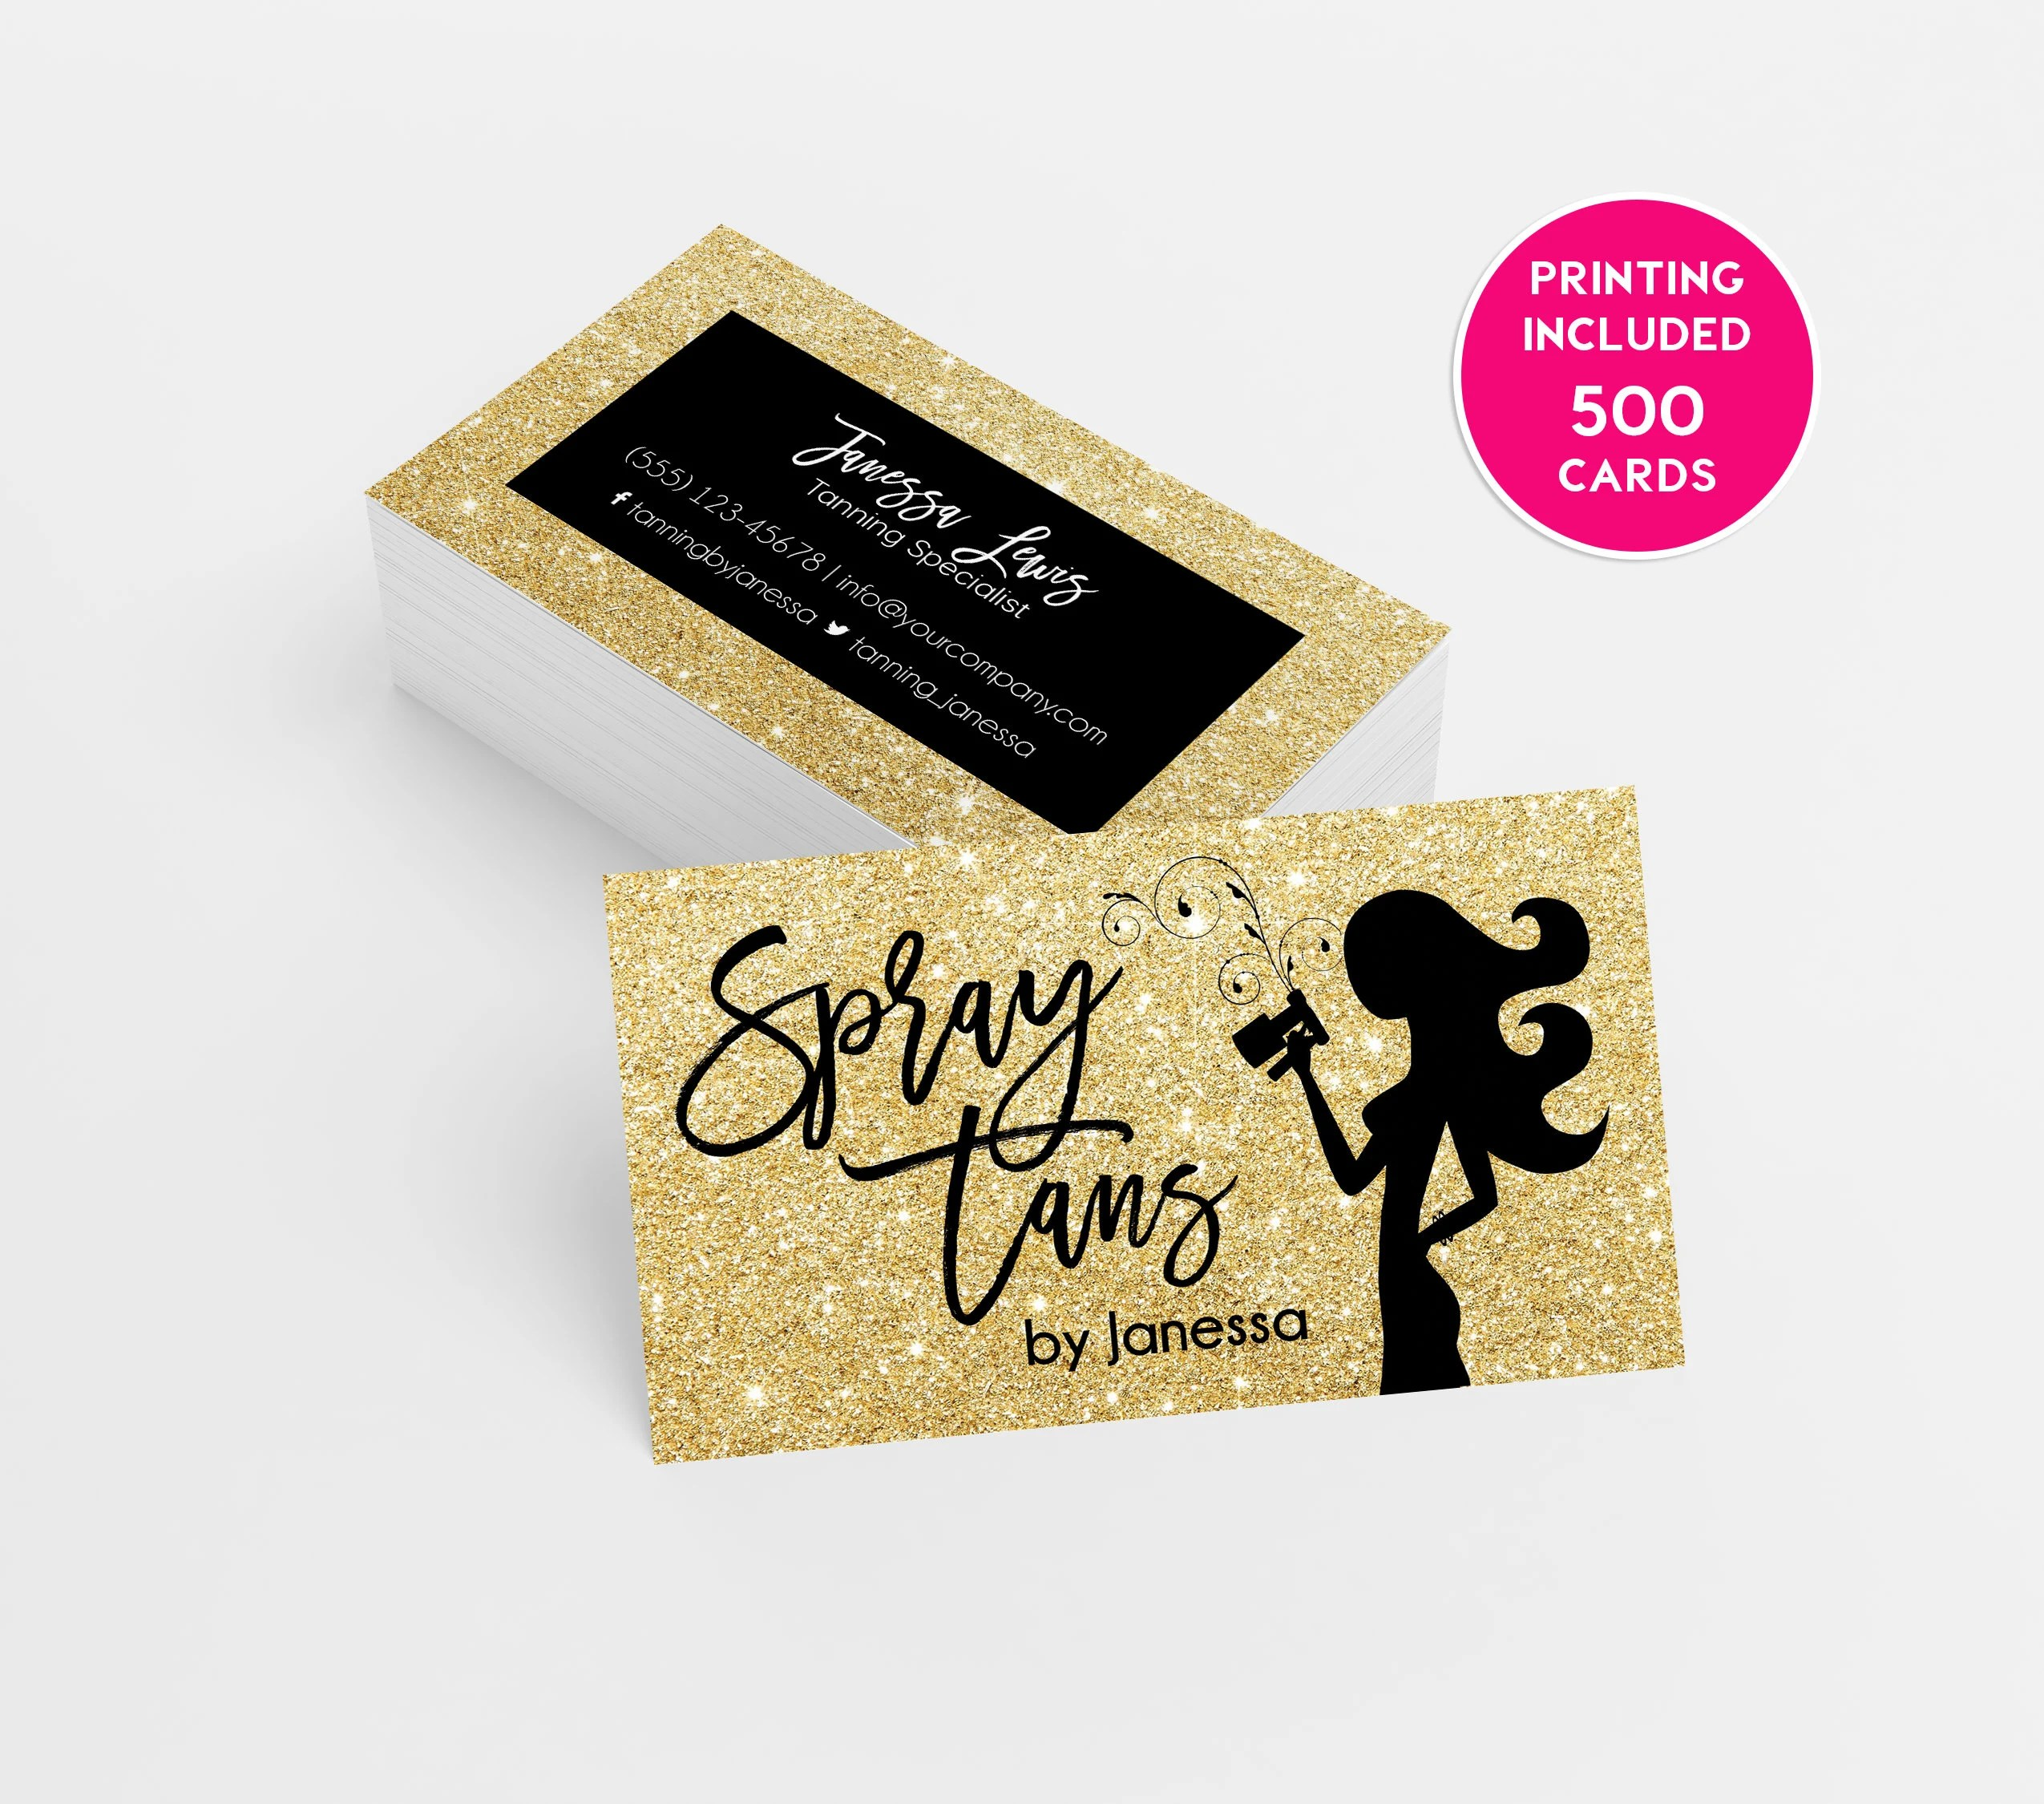 Gold Glitter Spray Tanning Business Card Design 500 Printed Etsy